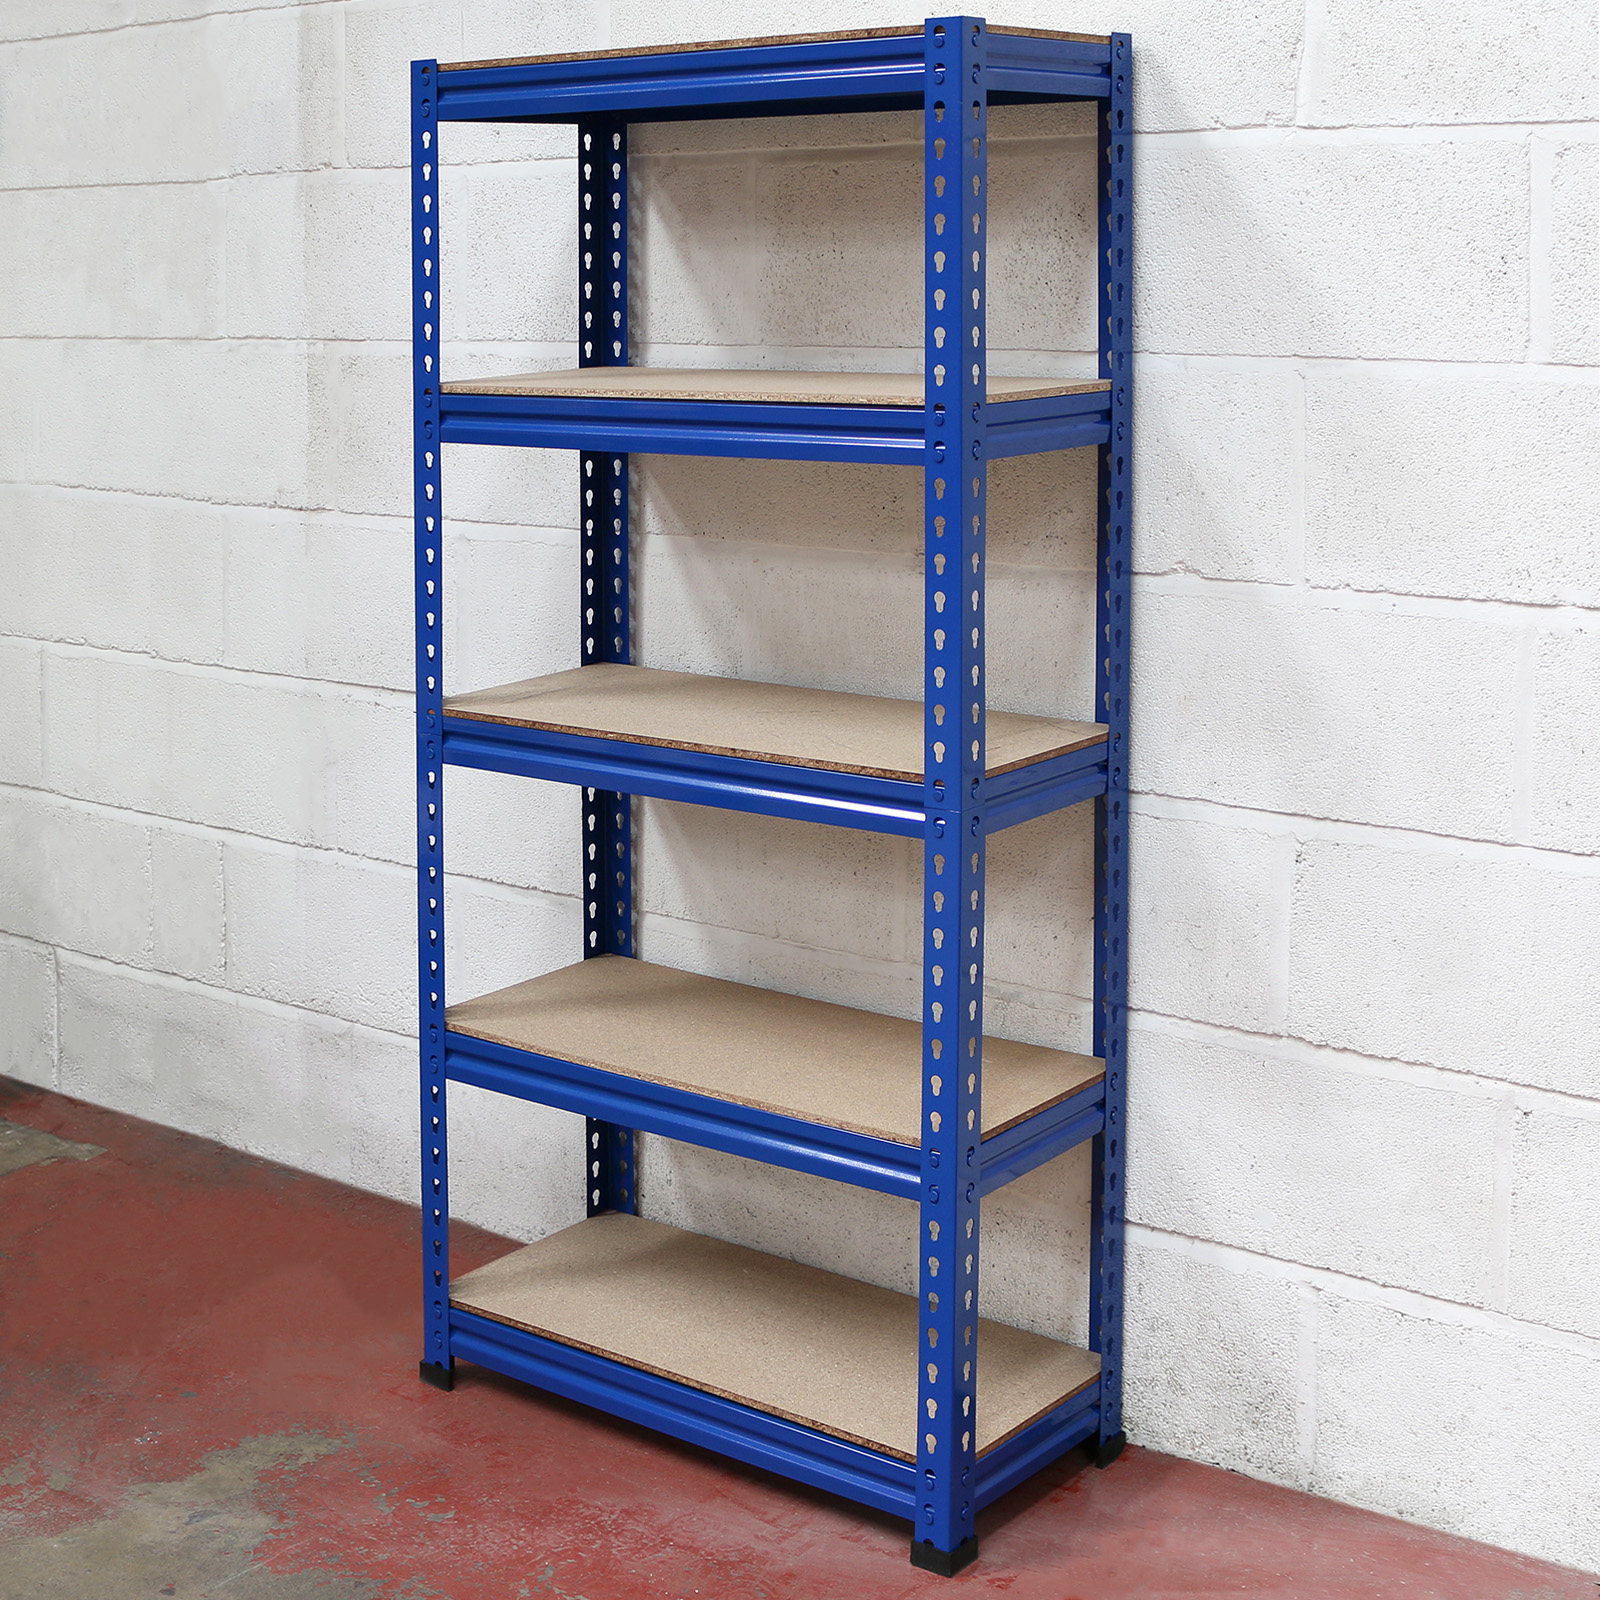 5 Tier Blue Heavy Duty Boltless Metal Storage Shelves